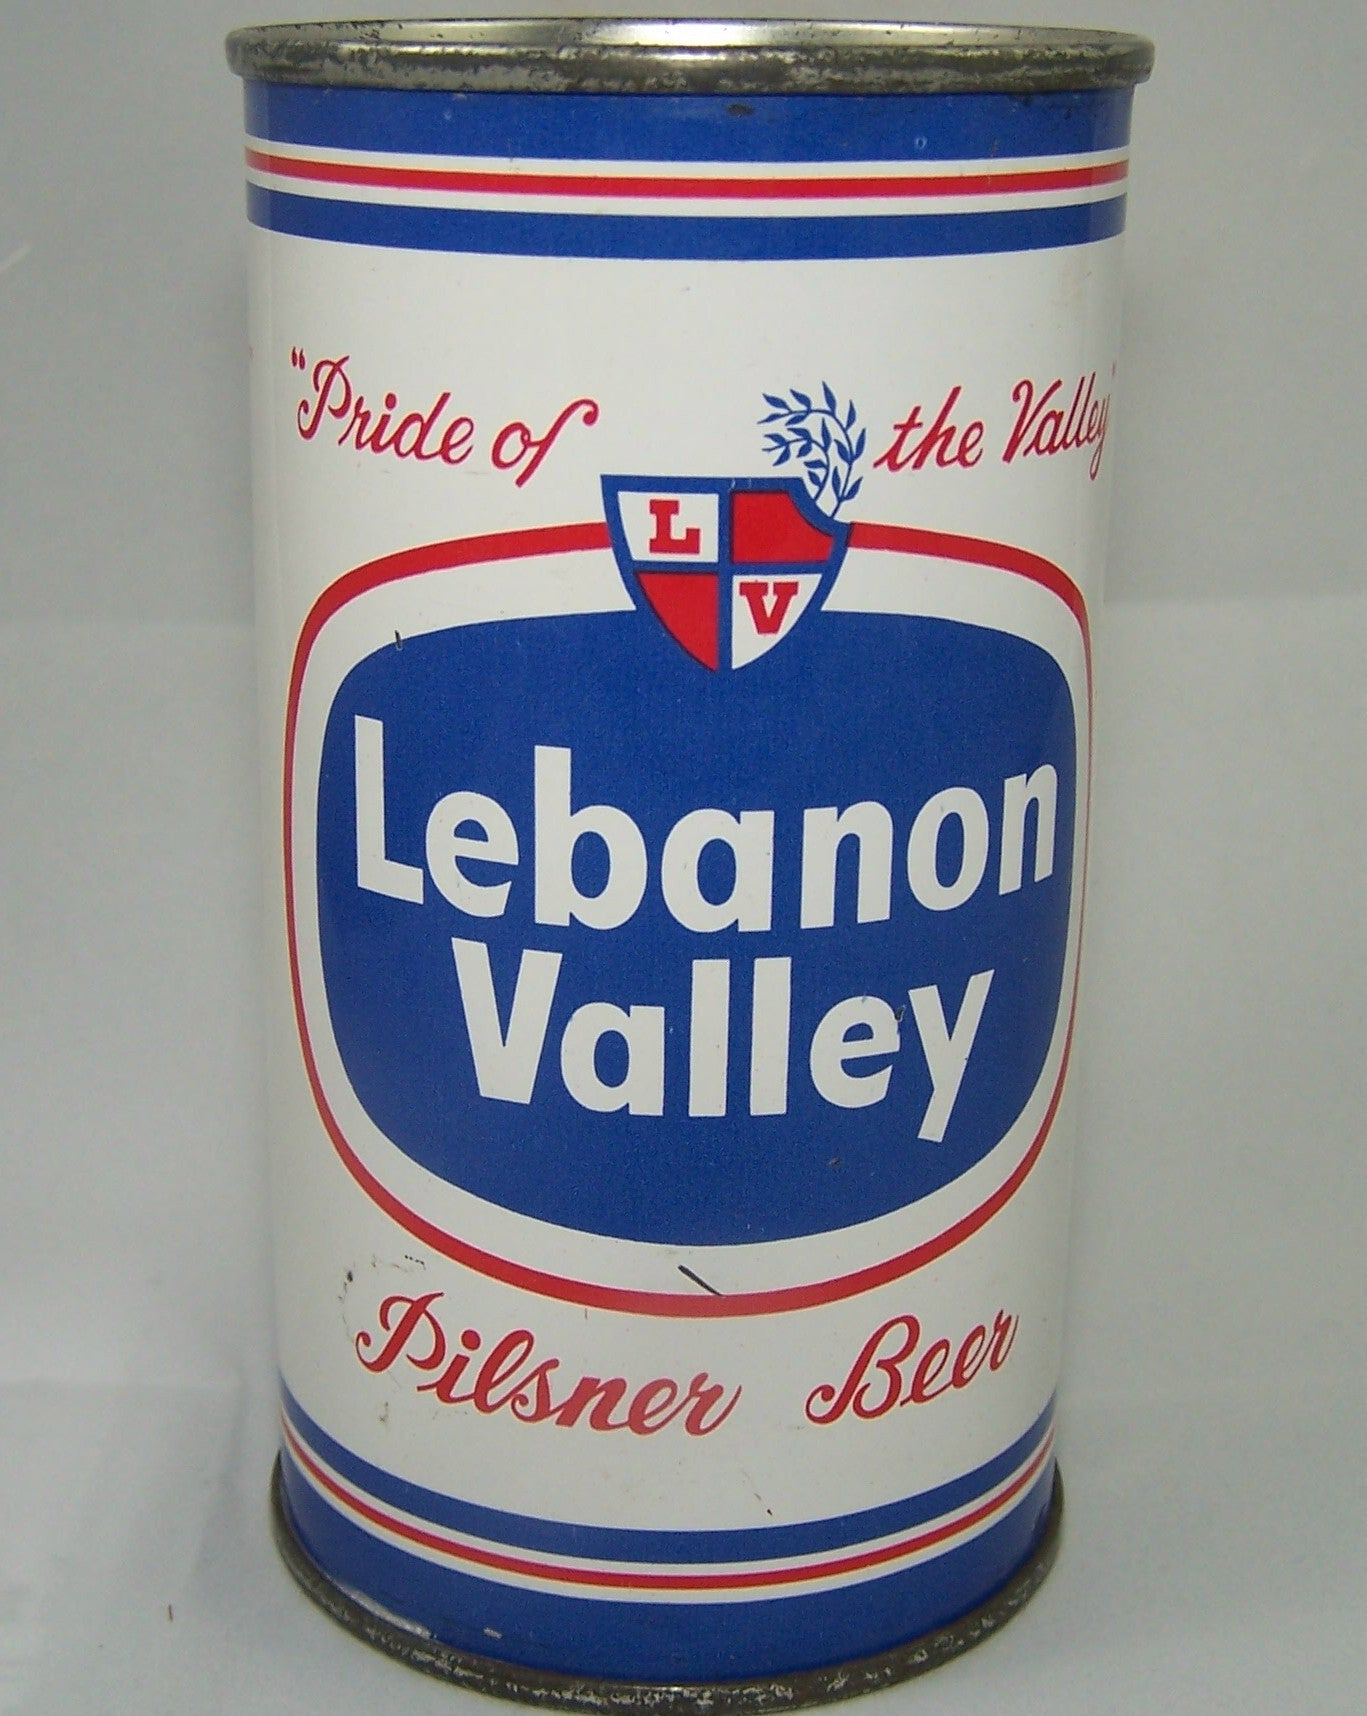 Lebanon Valley Pilsner Beer, USBC 91-5, Grade 1/1+ Sold 4/25/15